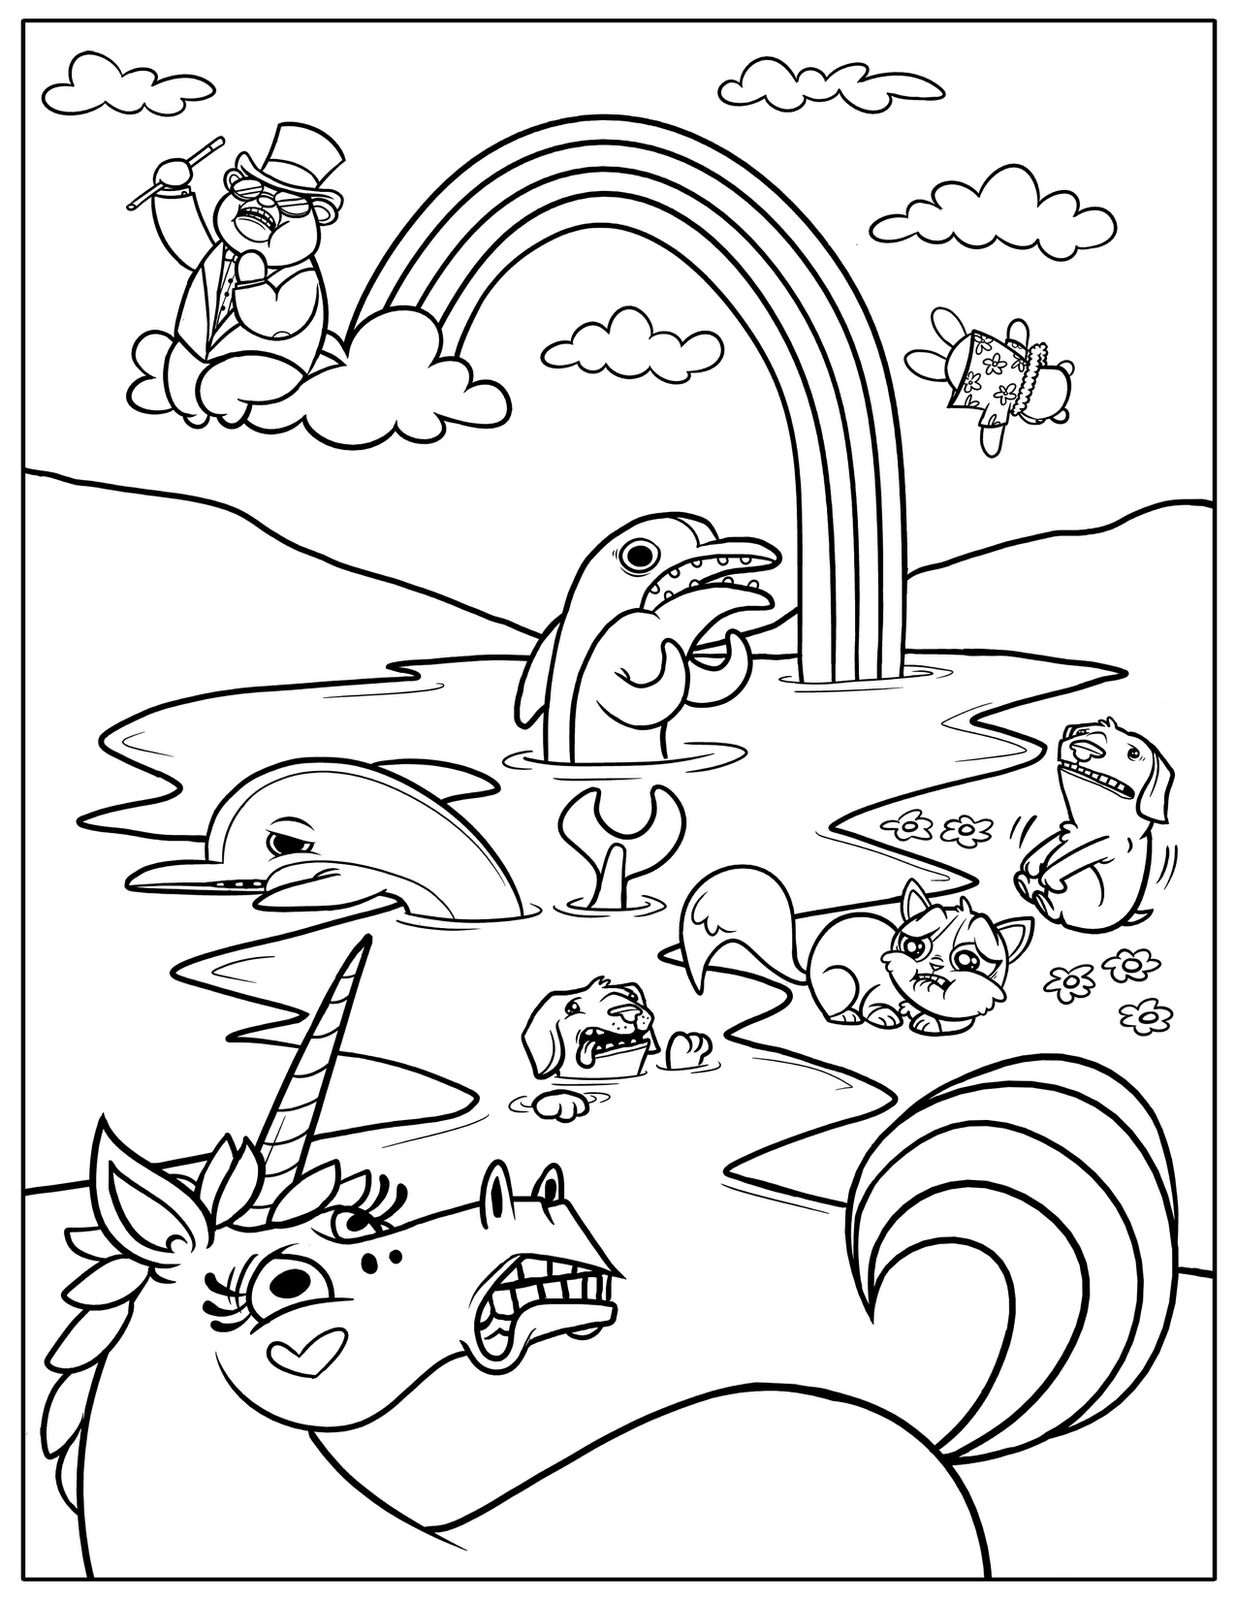 coloring pages for kids to print free fish coloring pages for kids kids to pages for coloring print